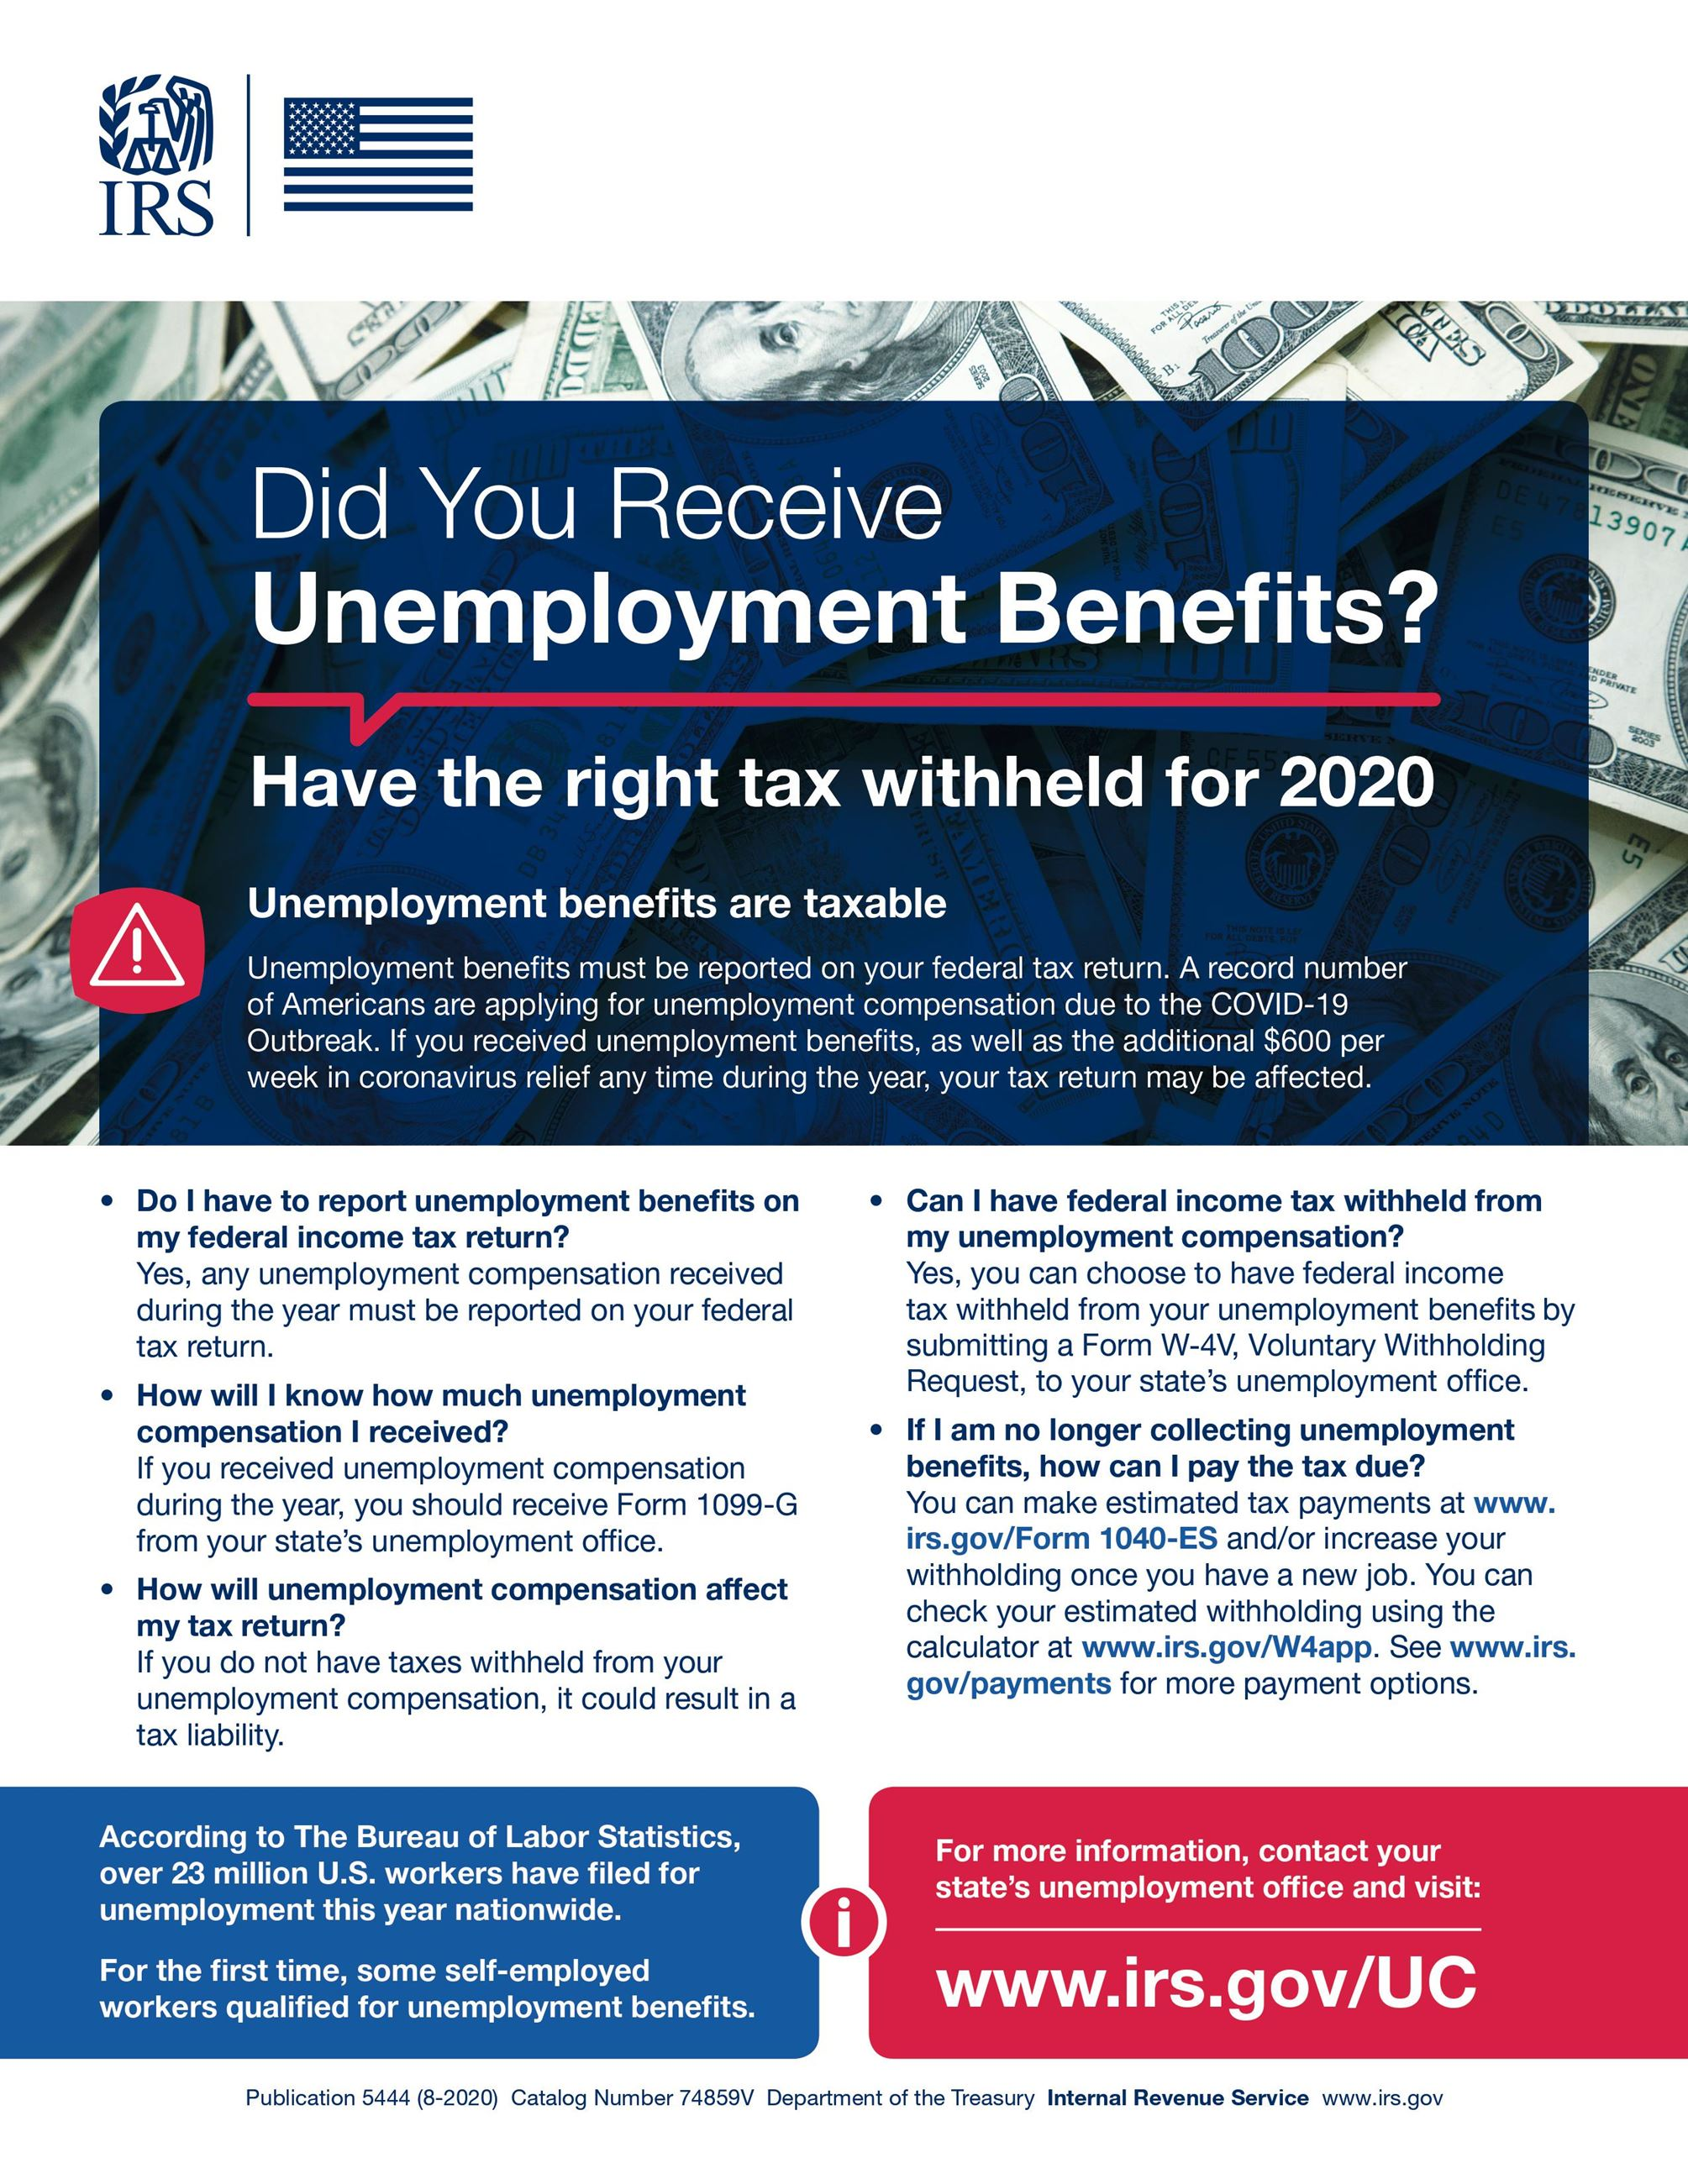 Tax Withholding for Unemployment Benefits Poster